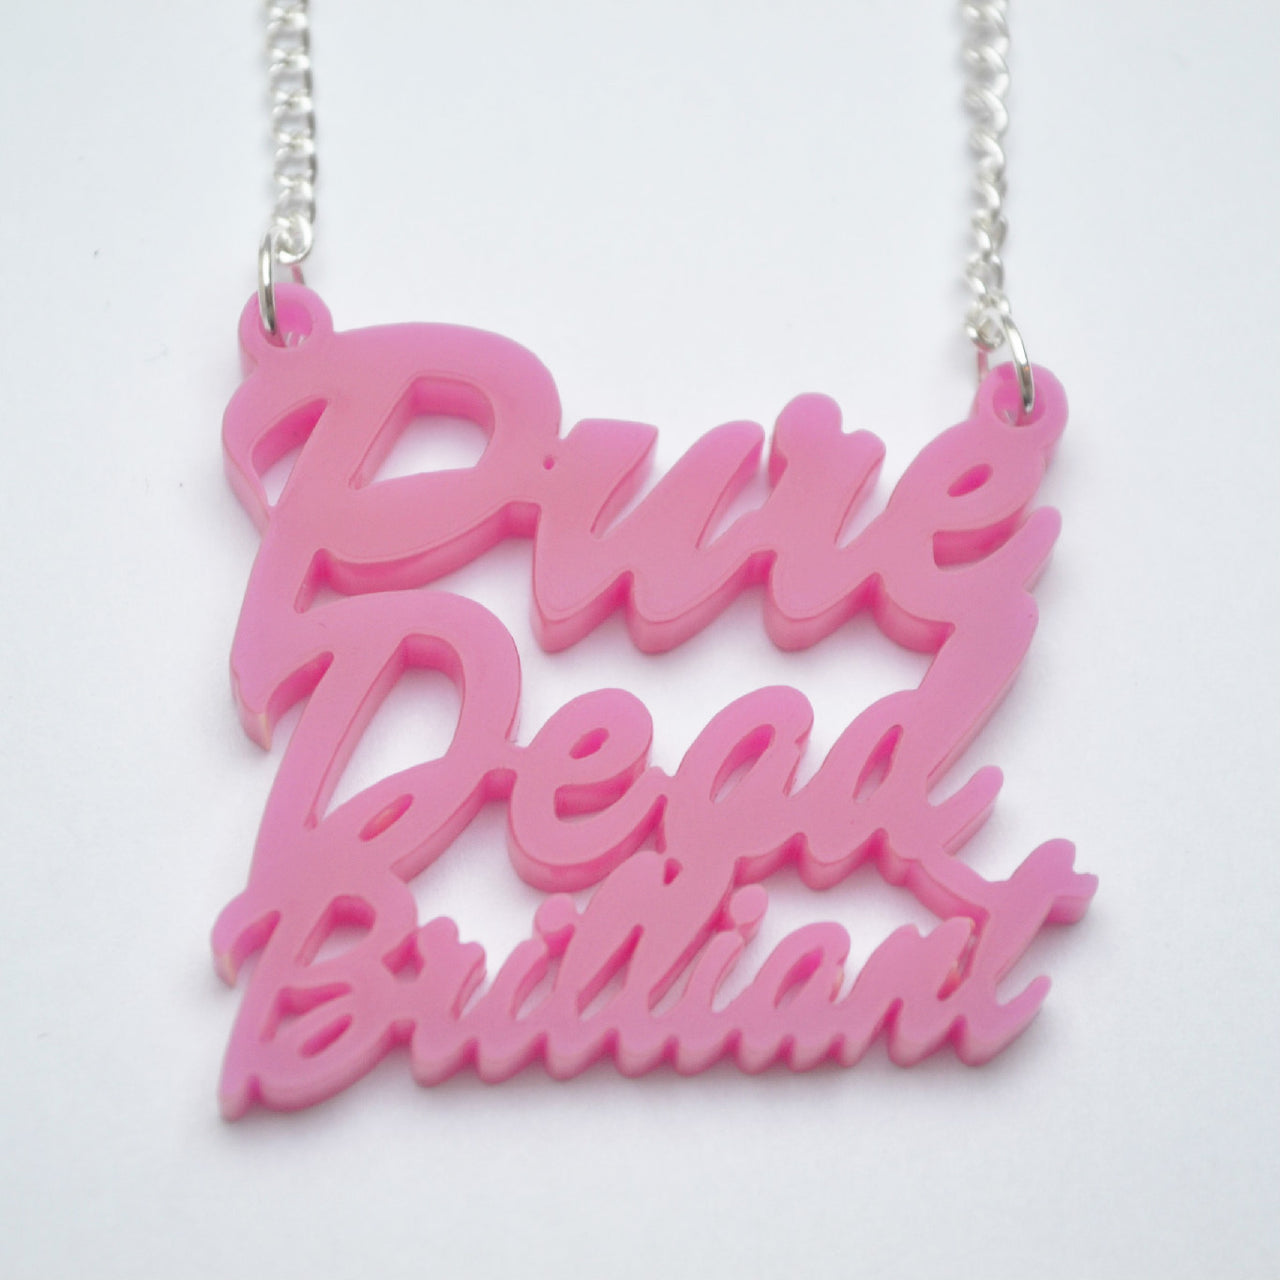 Pure Dead Brilliant Script Necklace